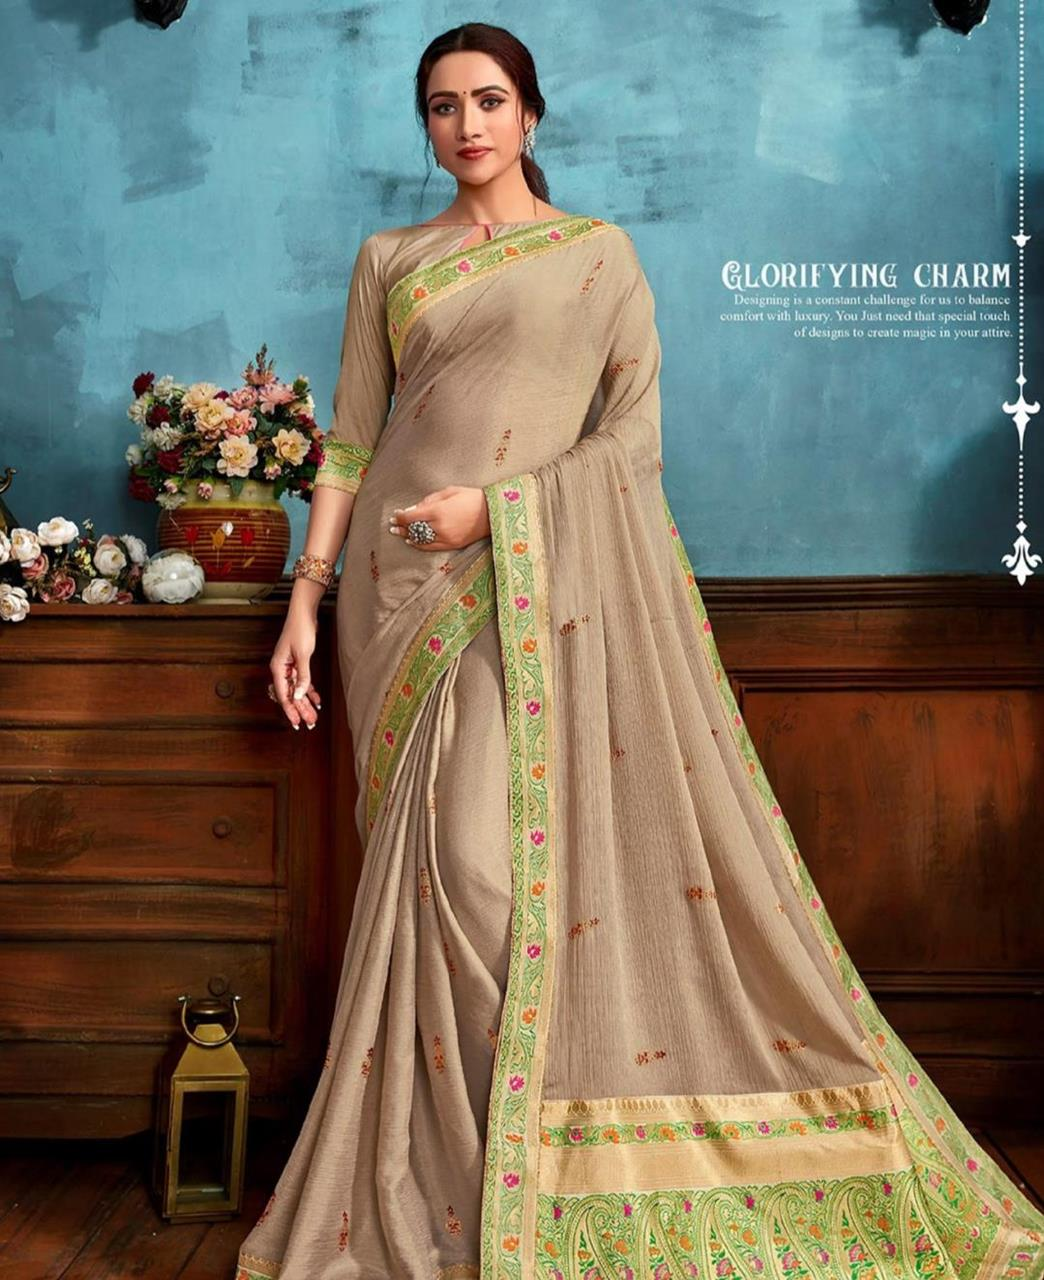 Printed Chiffon Saree in Beige